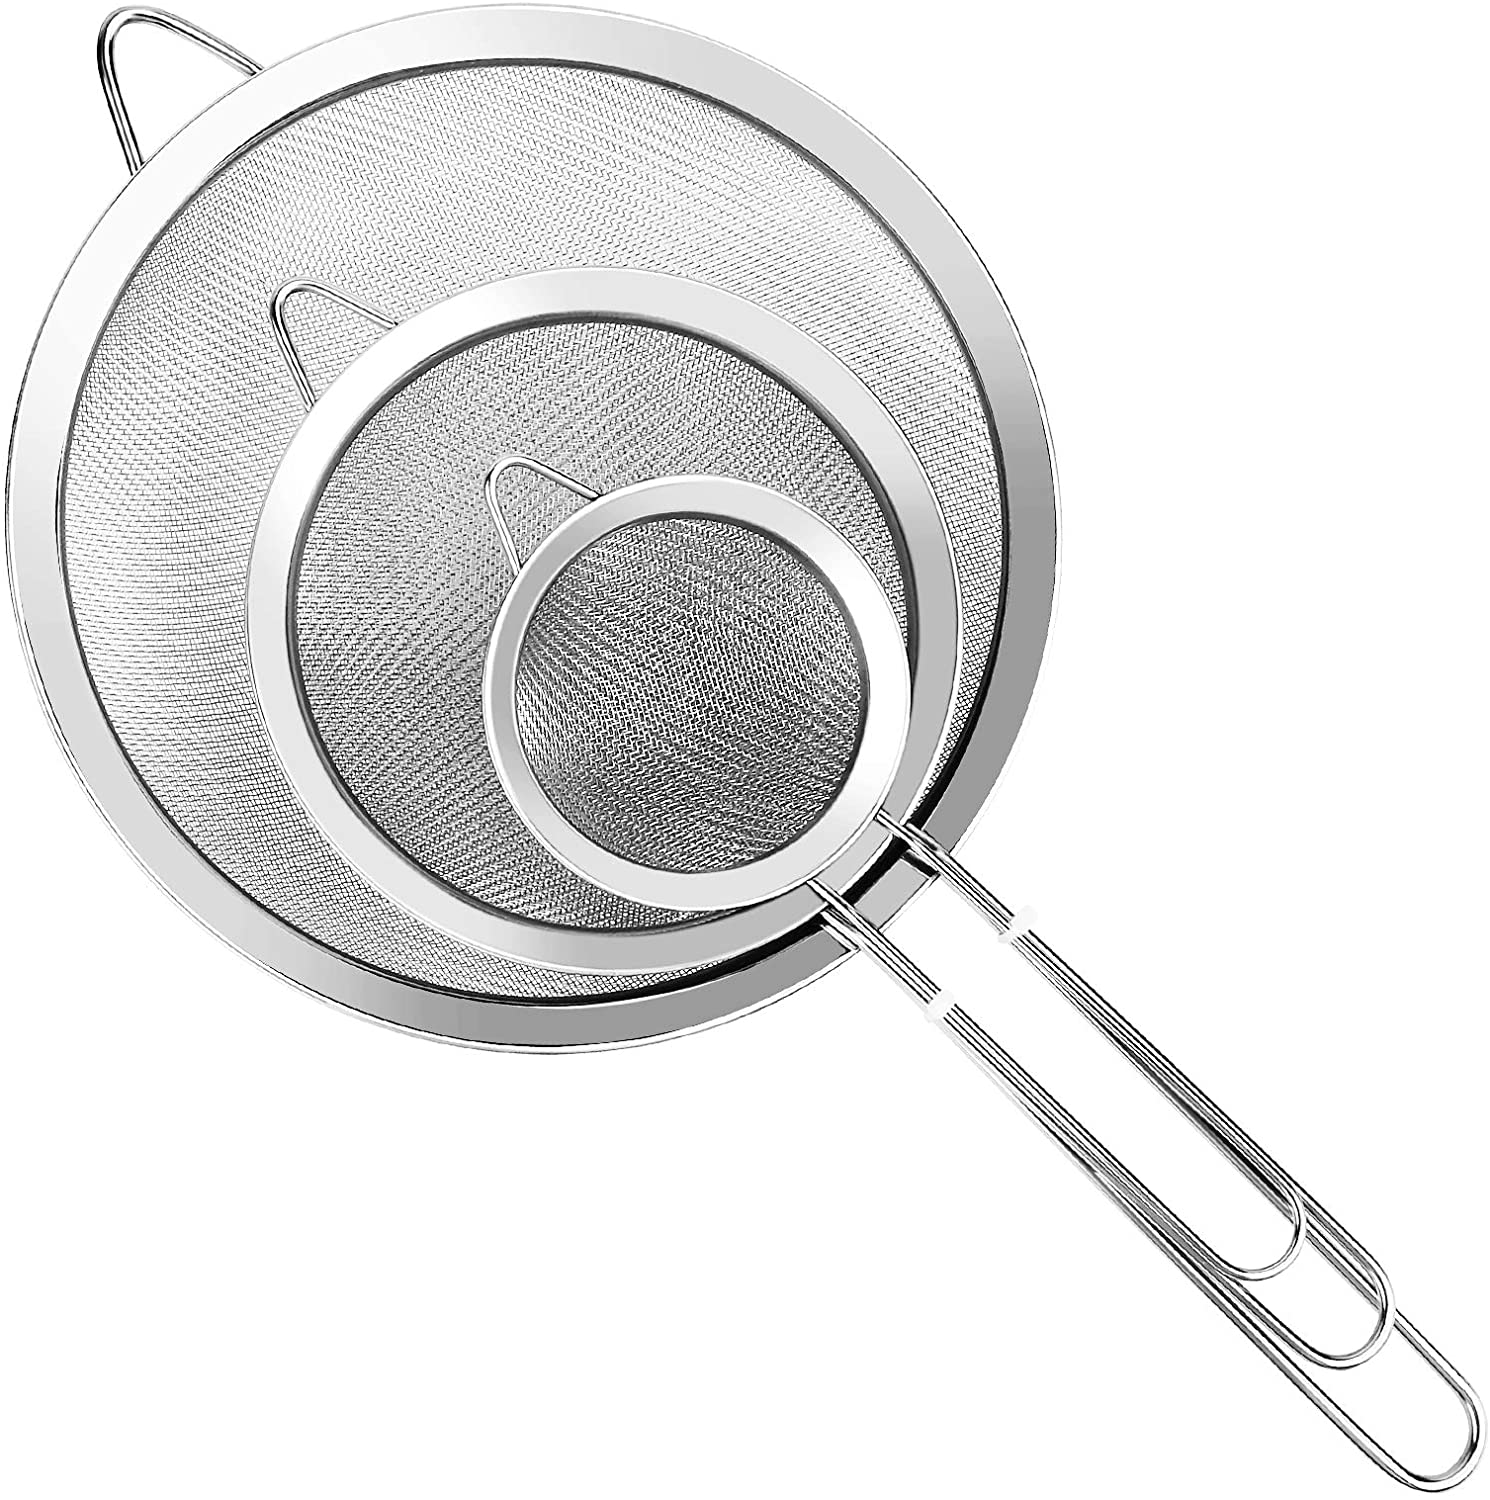 YLYL 3 Pcs Super Wire Extra Fine Mesh Strainer with Handle, Small Medium Large Size Sifter Metal Strainer Set, Stainless Steel Sieve Fine Mesh Strainers for Kitchen Rice Juice Quinoa Food Flour Baking